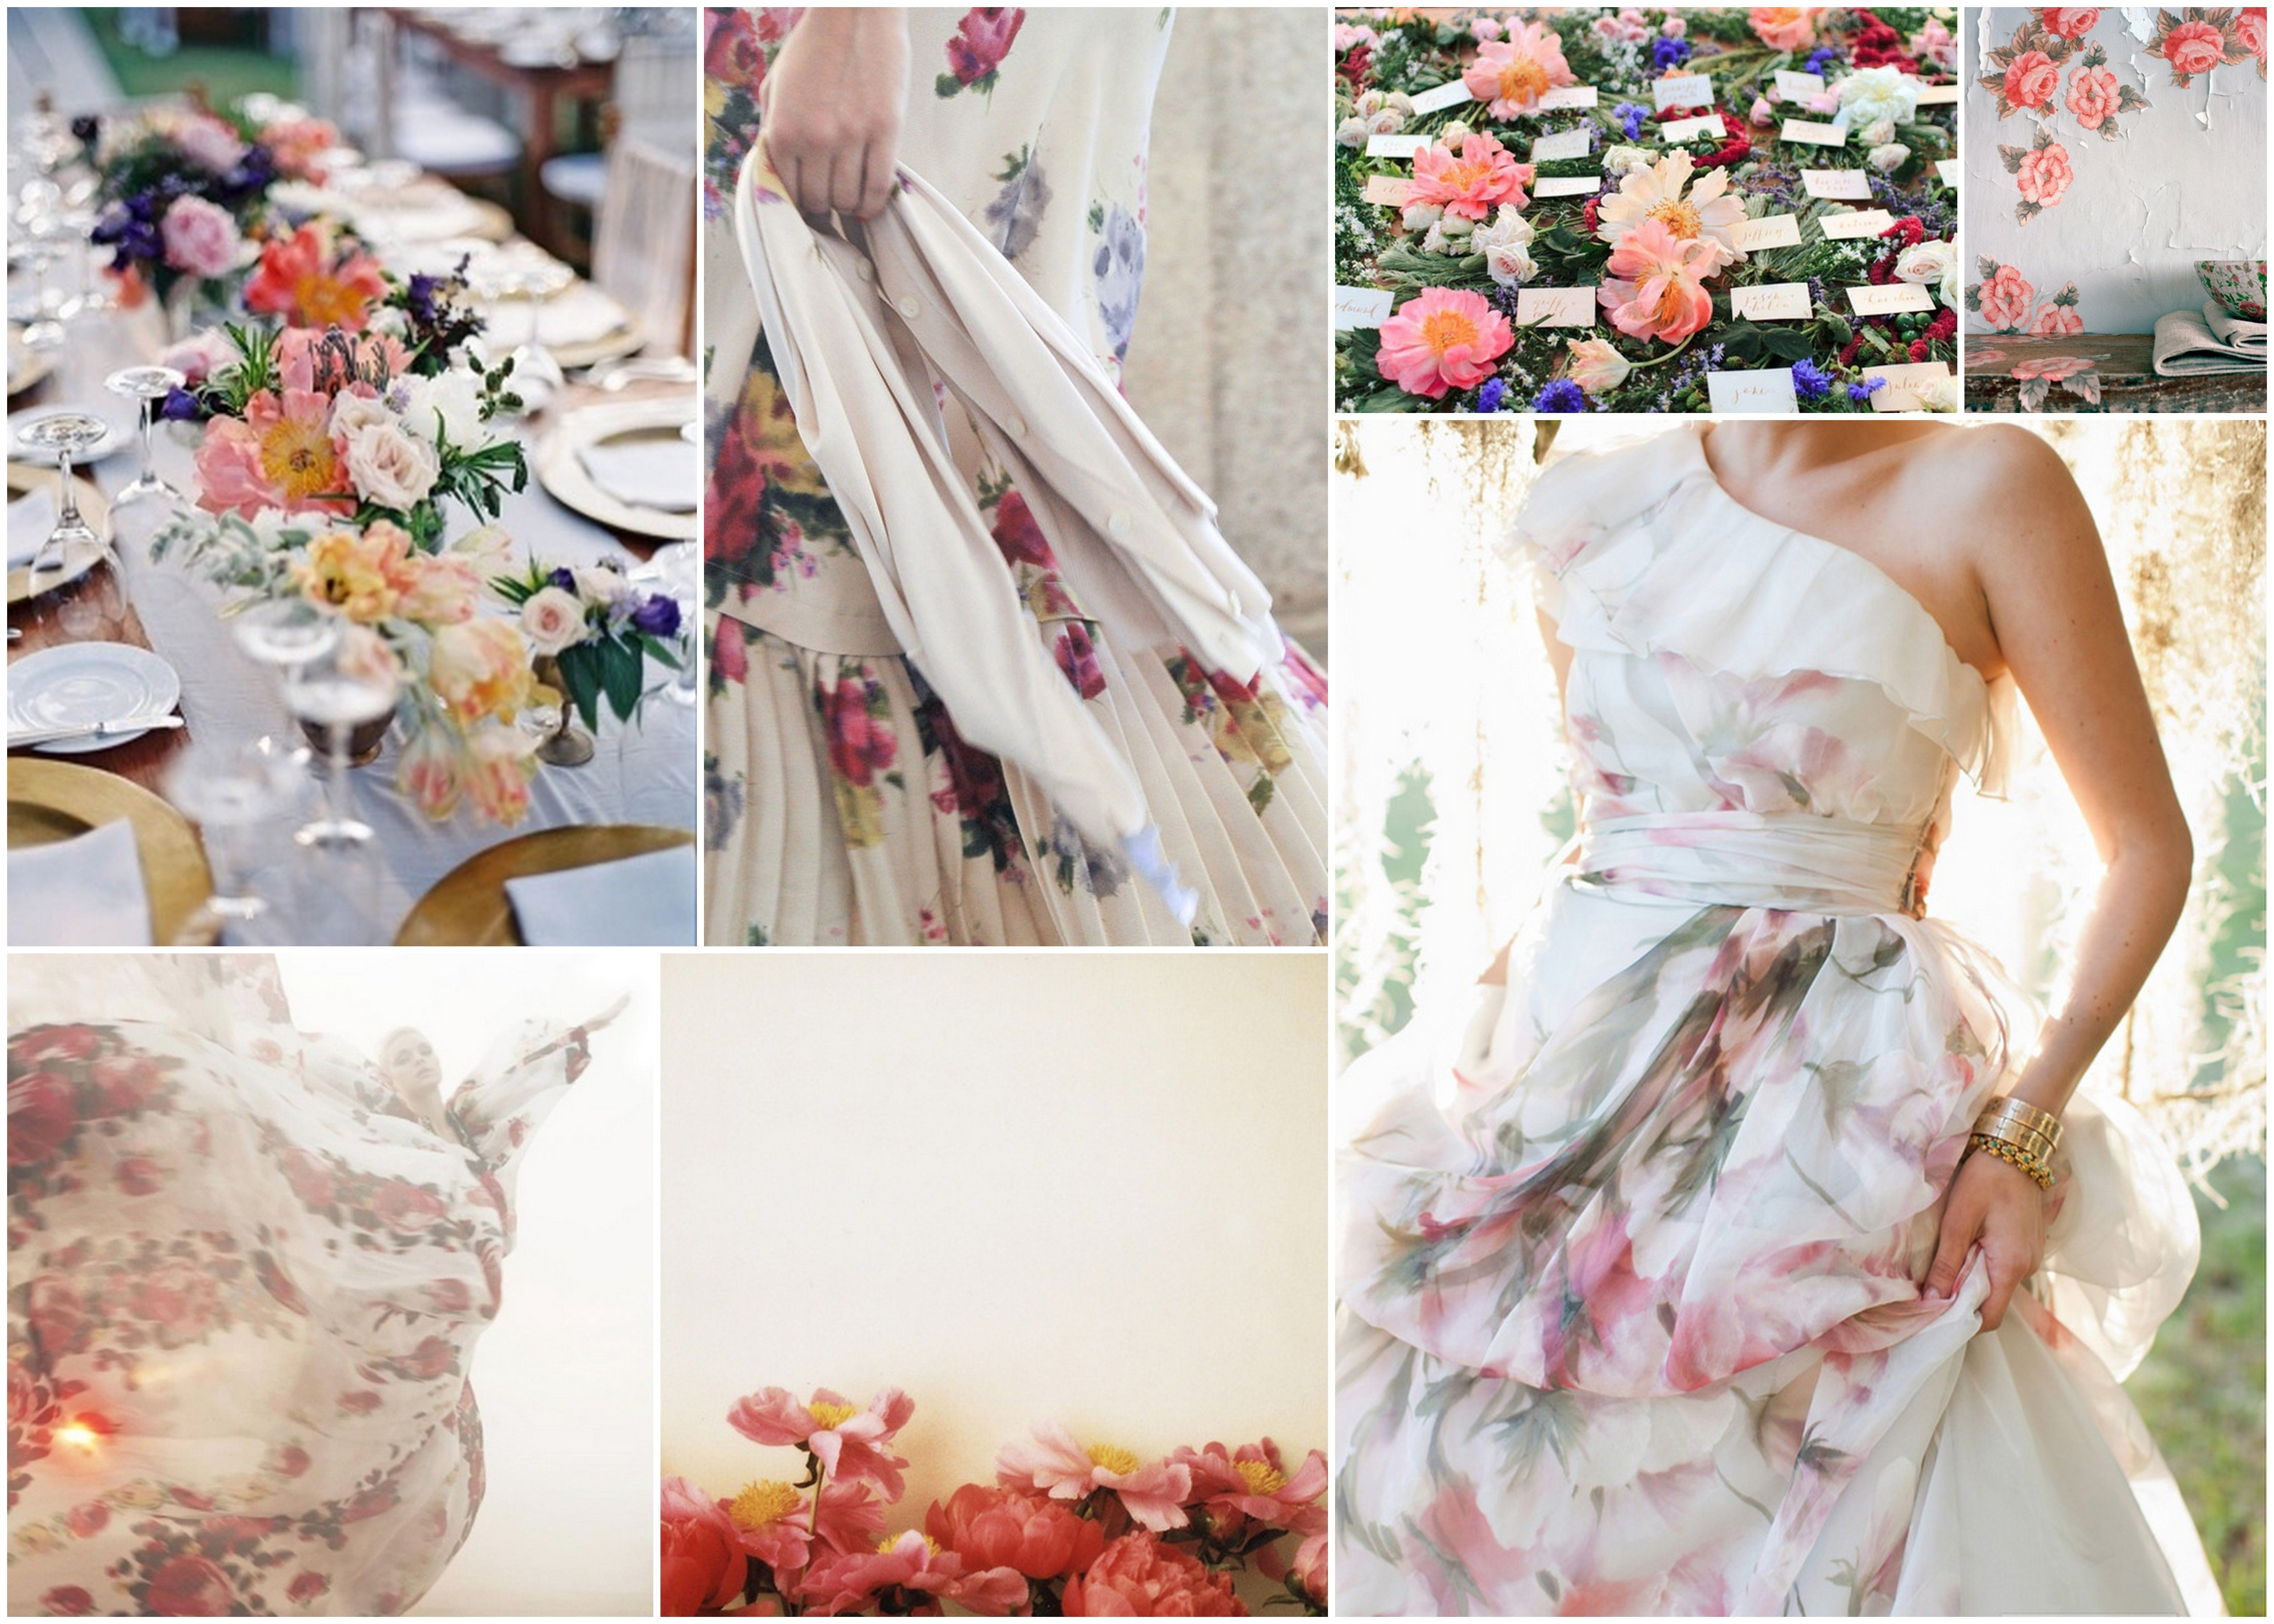 Floral print wedding dresses  dreaming of flowers  Wed  Pinterest  Wedding and Wedding